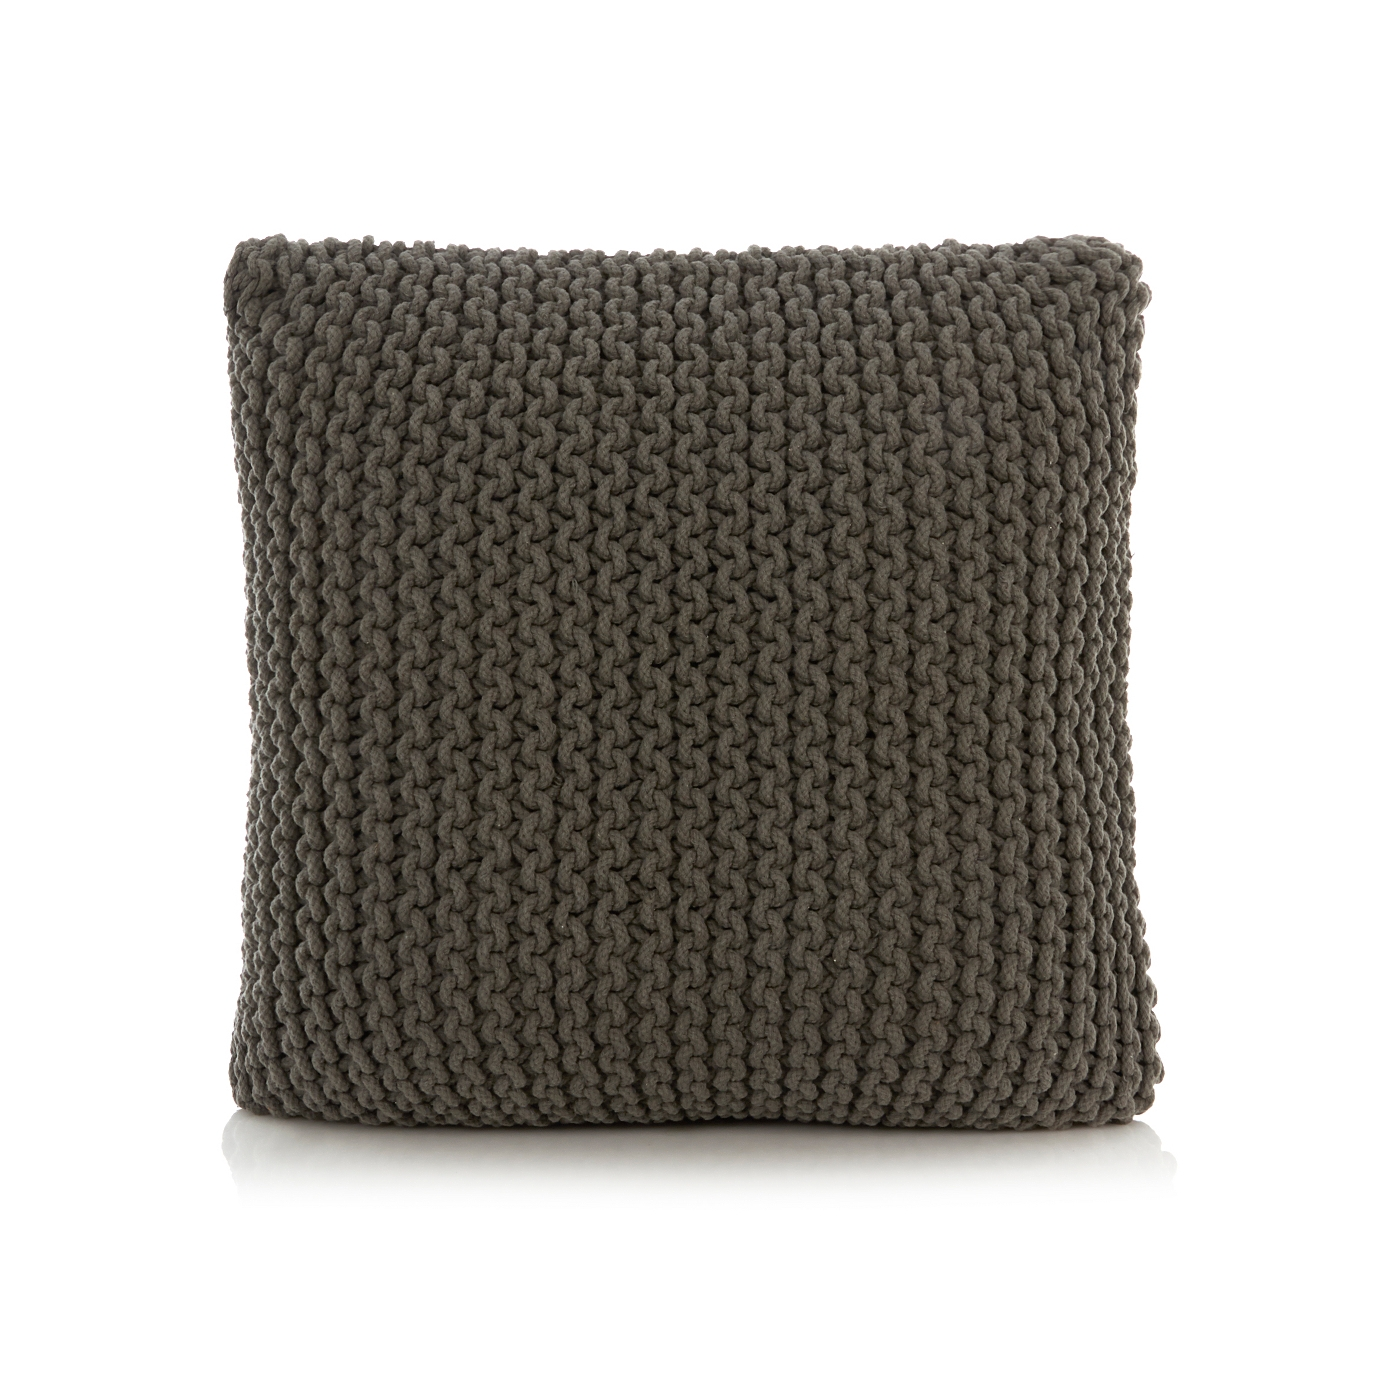 George Home Large Knitted Square Pouffe Cushion Footstools For Tesco Footstools And Pouffes (Photo 14 of 15)